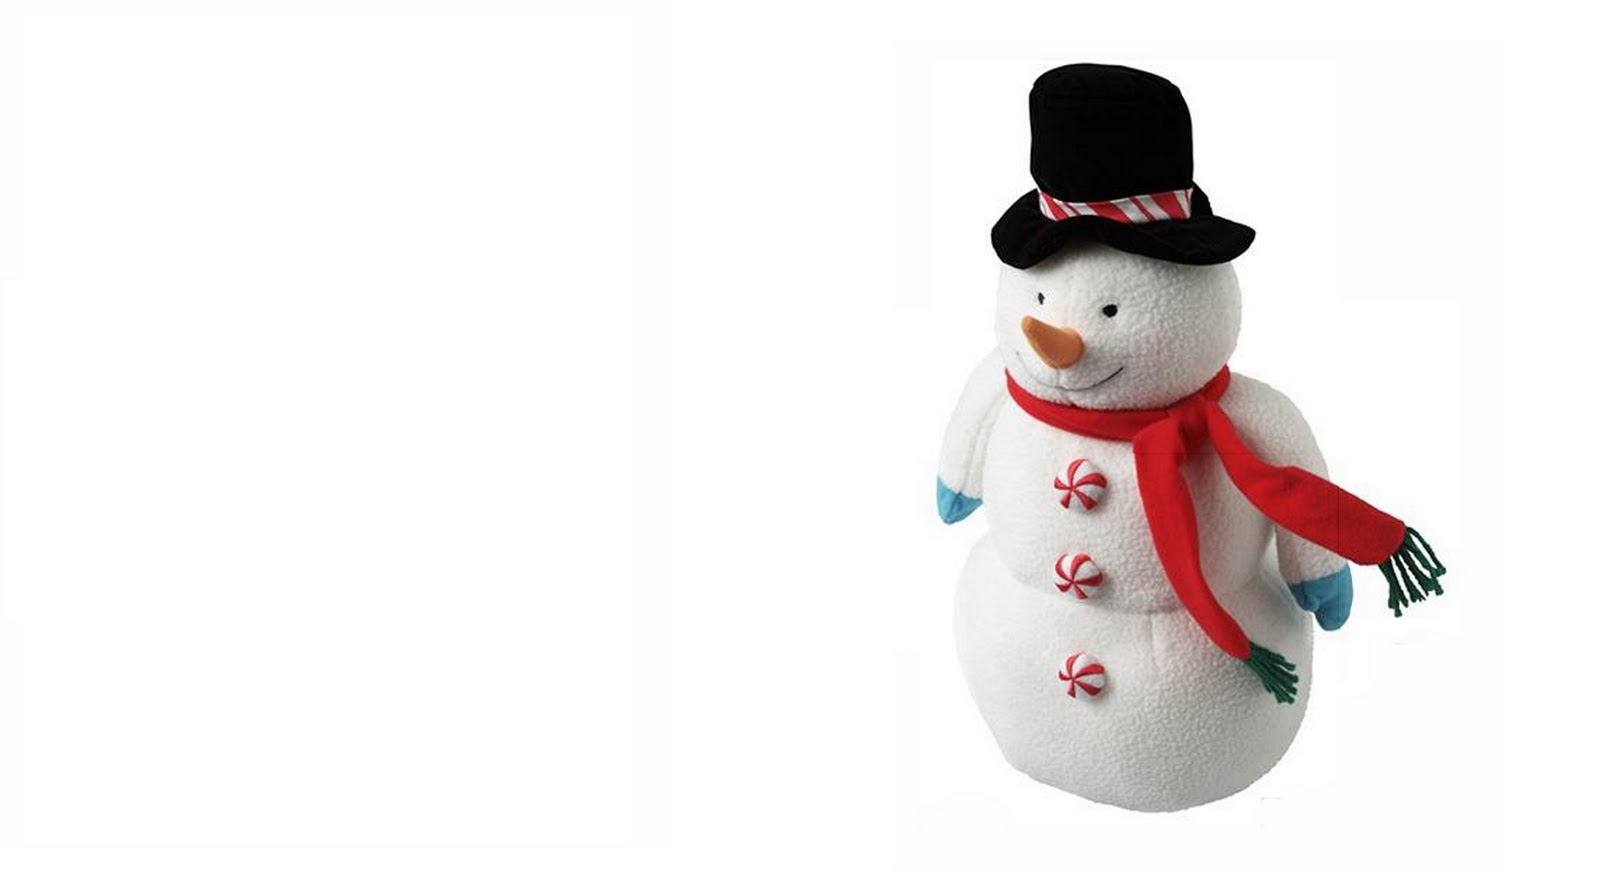 3D Snowman Decoration HD Wallpaper ~ The Wallpaper Database